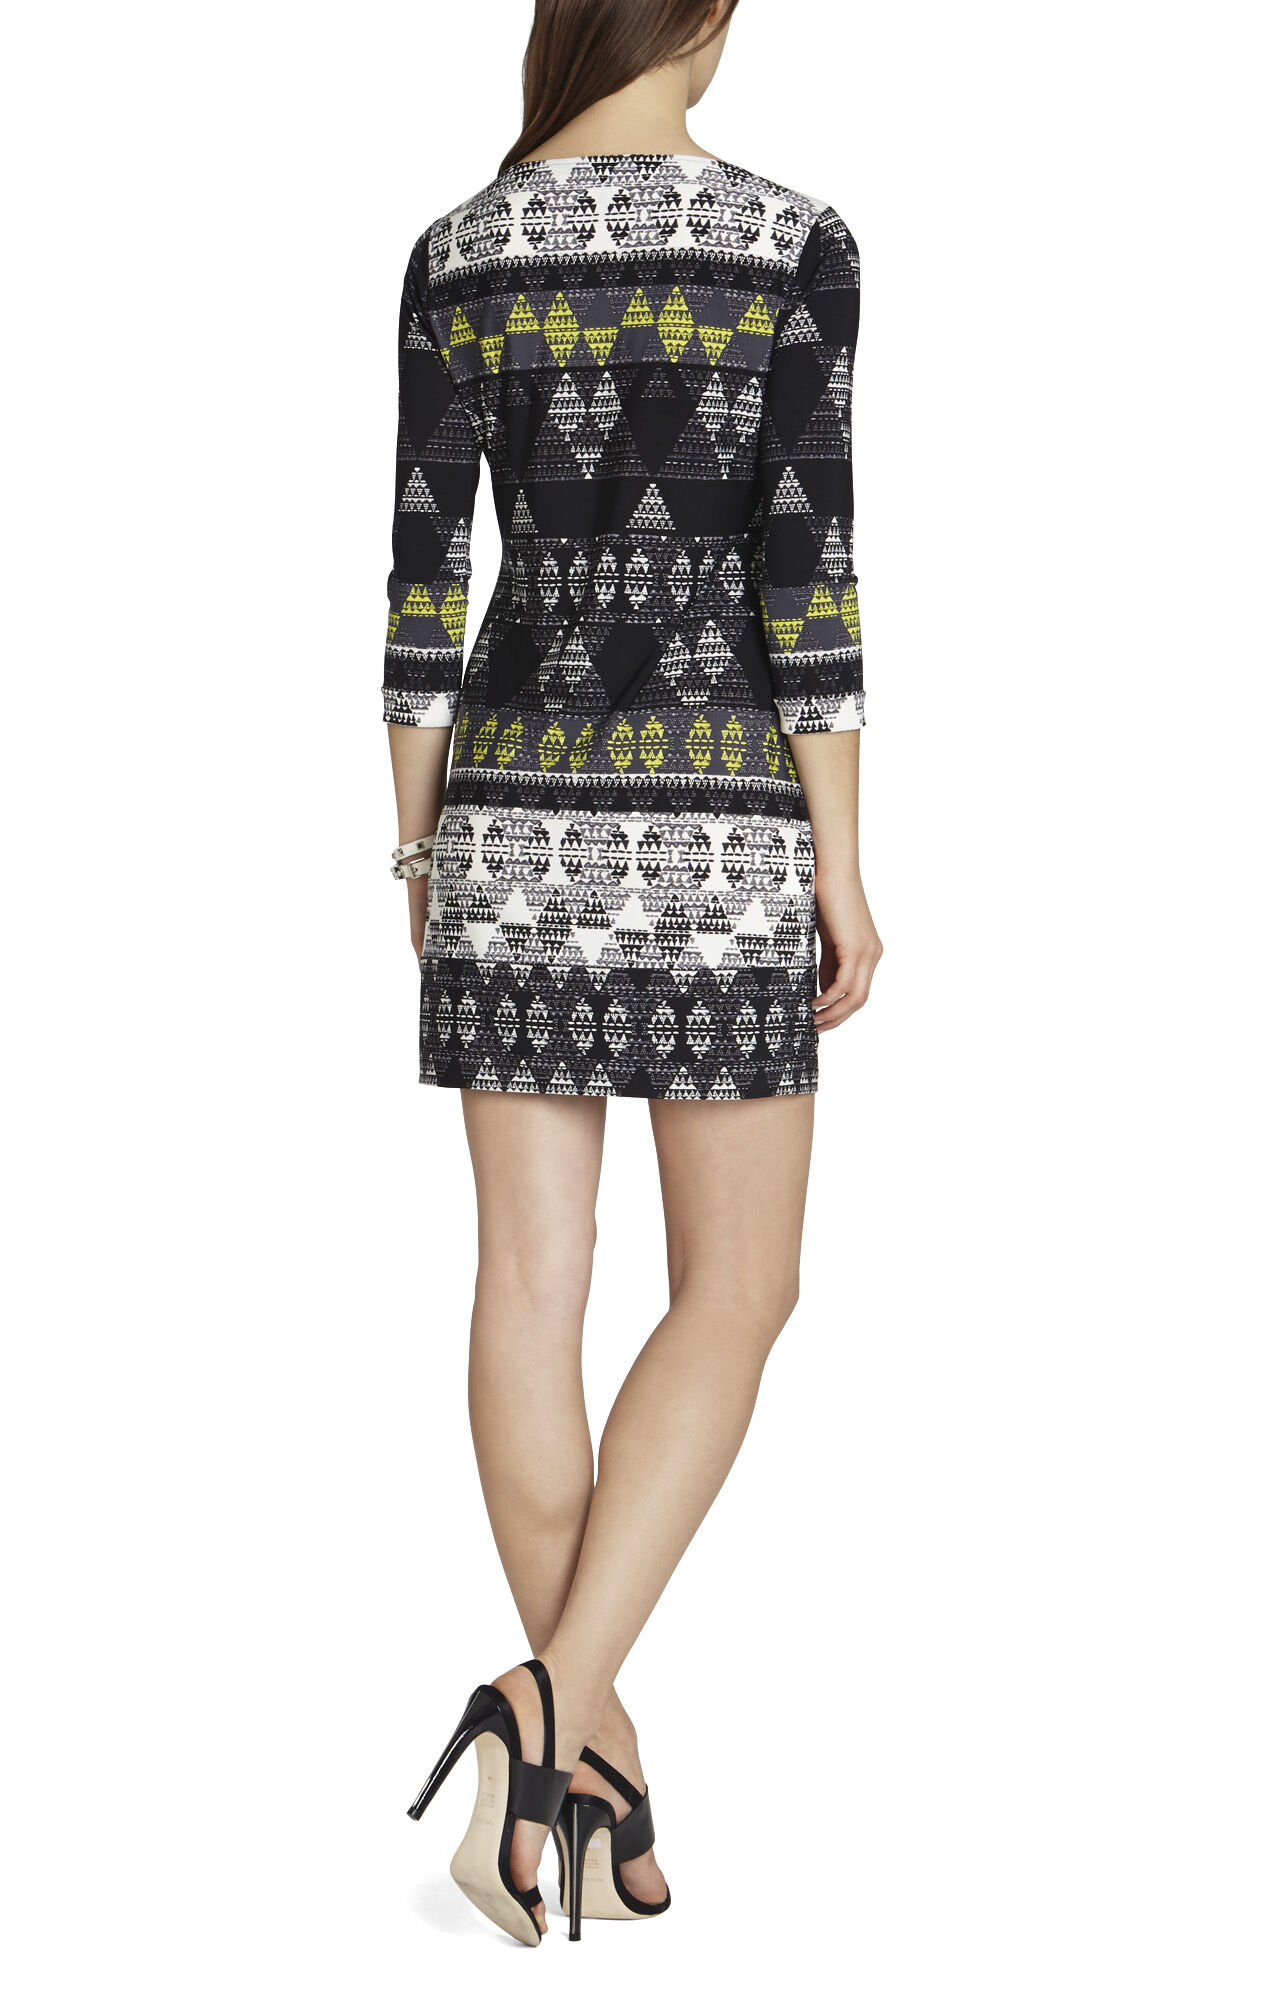 Calico Printed Shift Dress